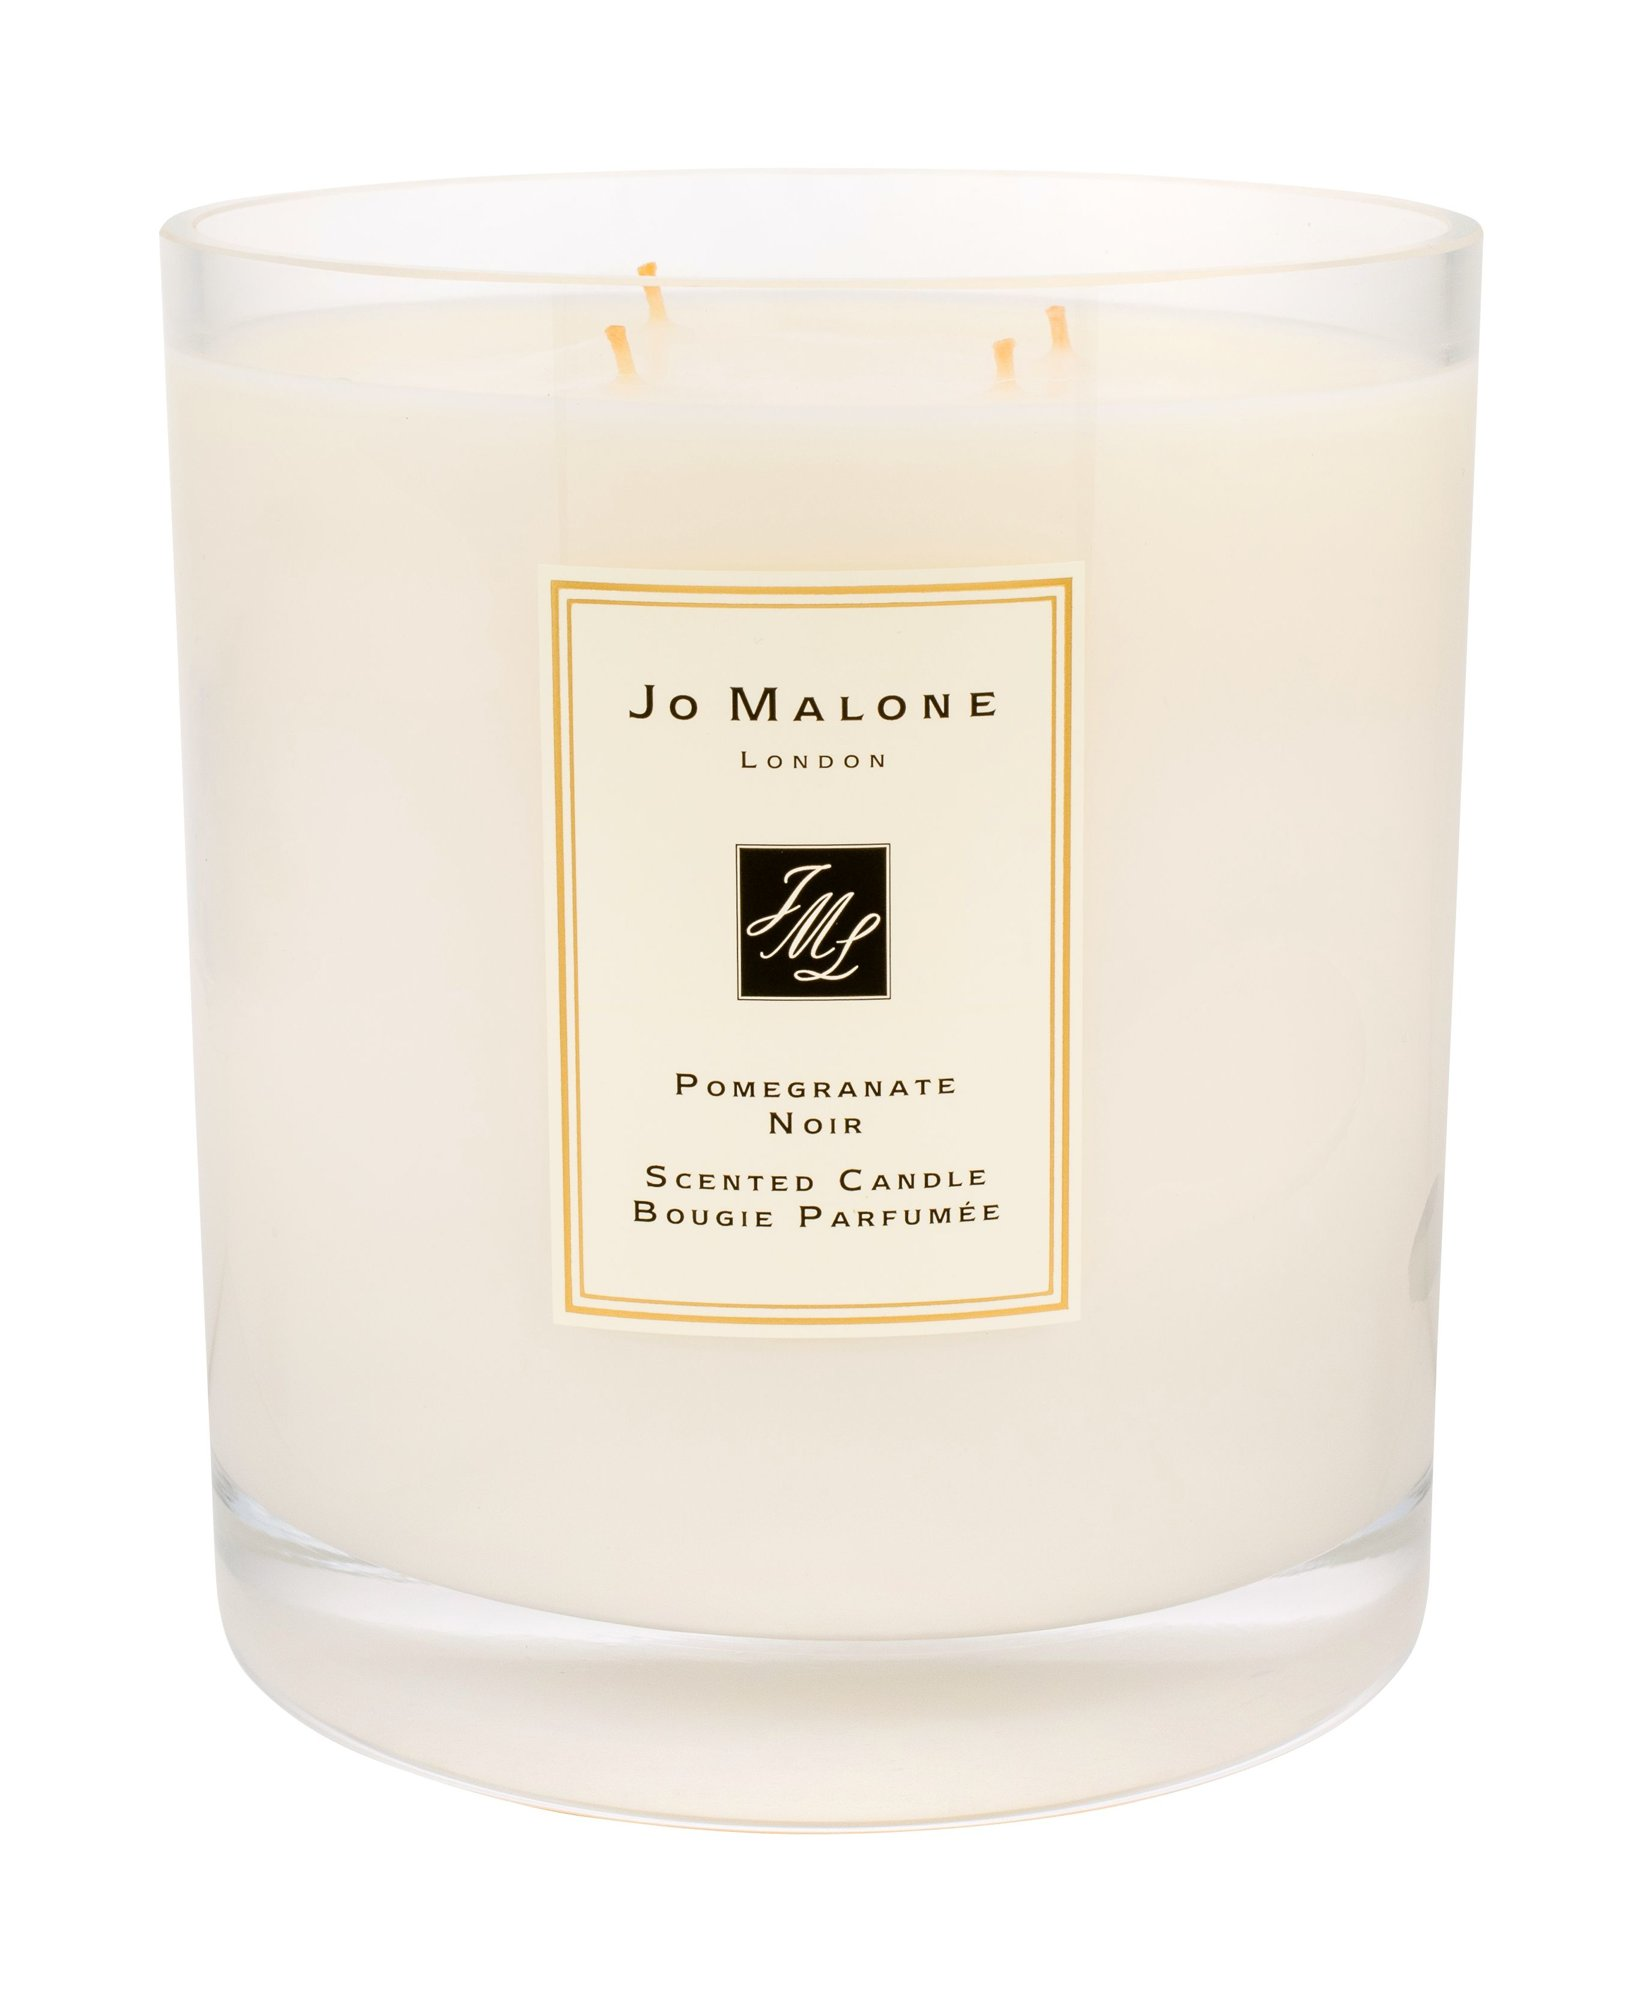 Jo Malone Pomegranate Noir Scented Candle 2500ml